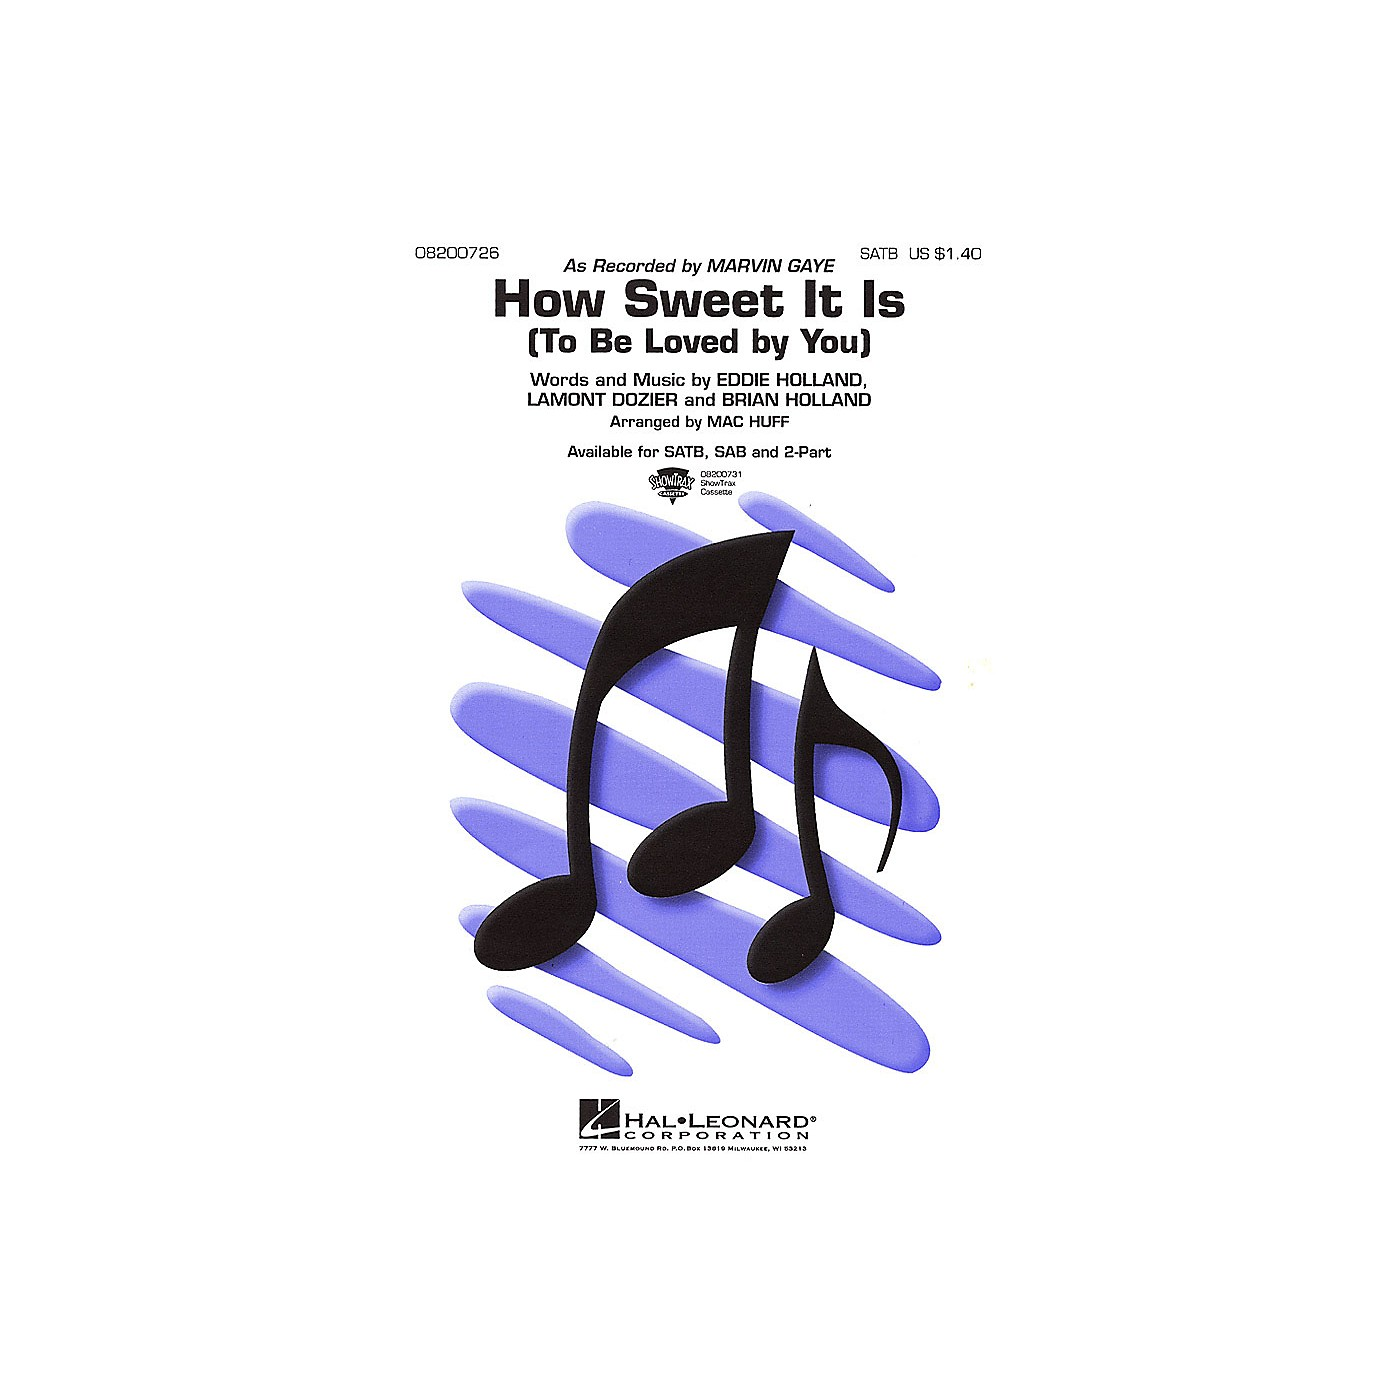 Hal Leonard How Sweet It Is (To Be Loved by You) 2-Part by Marvin Gaye Arranged by Mac Huff thumbnail